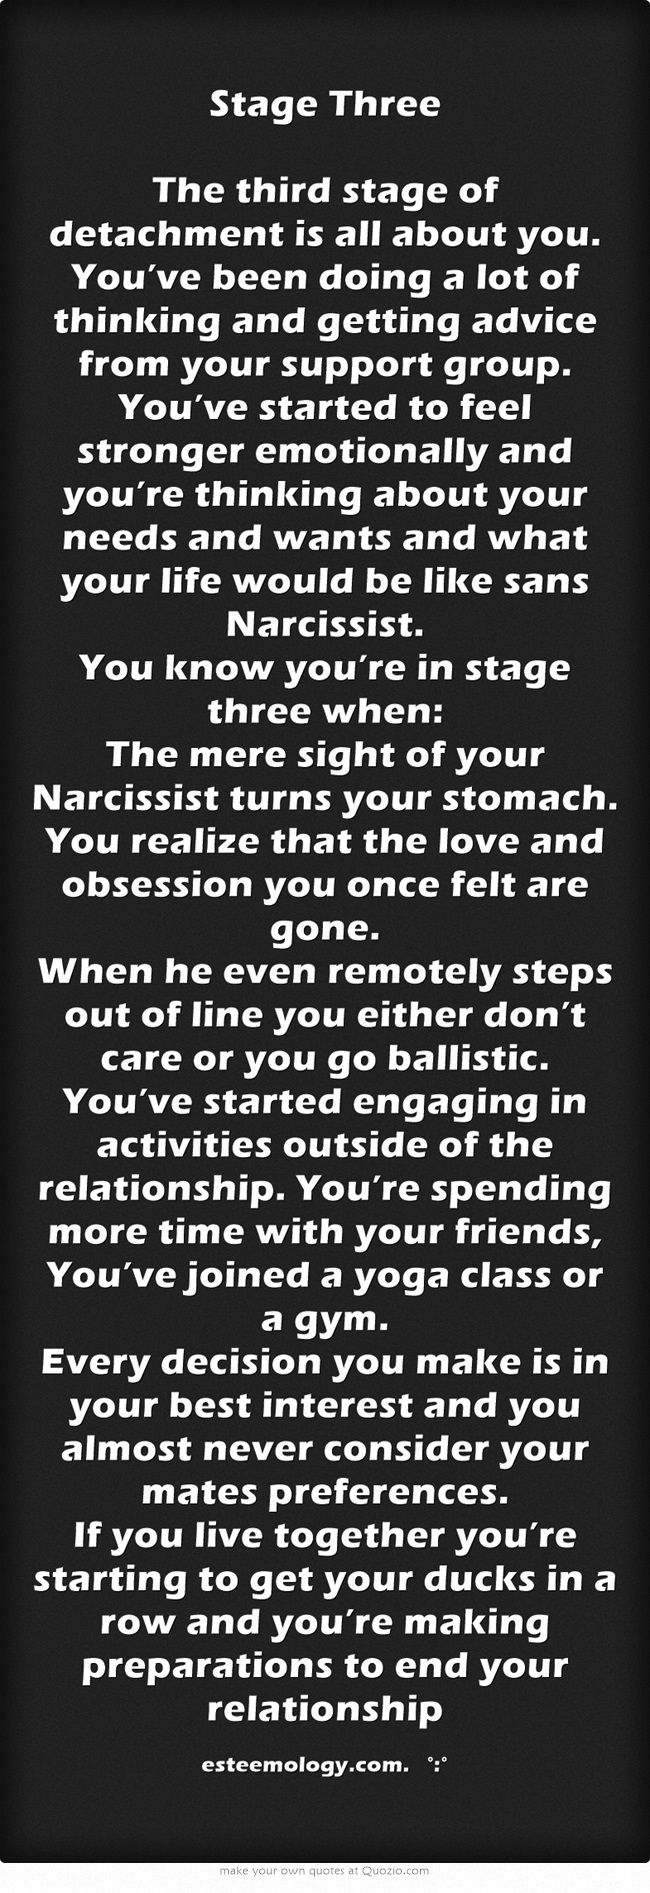 Stage Three The third stage of detachment is all about you. You've been doing a lot of thinking and getting advice from your support group. You've started to feel stronger emotionally and you're thinking about your needs and wants and what your life would be like sans Narcissist. You know you're in stage three when: The mere sight of your Narcissist turns your stomach. You realize that the love and obsession you once felt are gone. When he even remotely steps out of line...